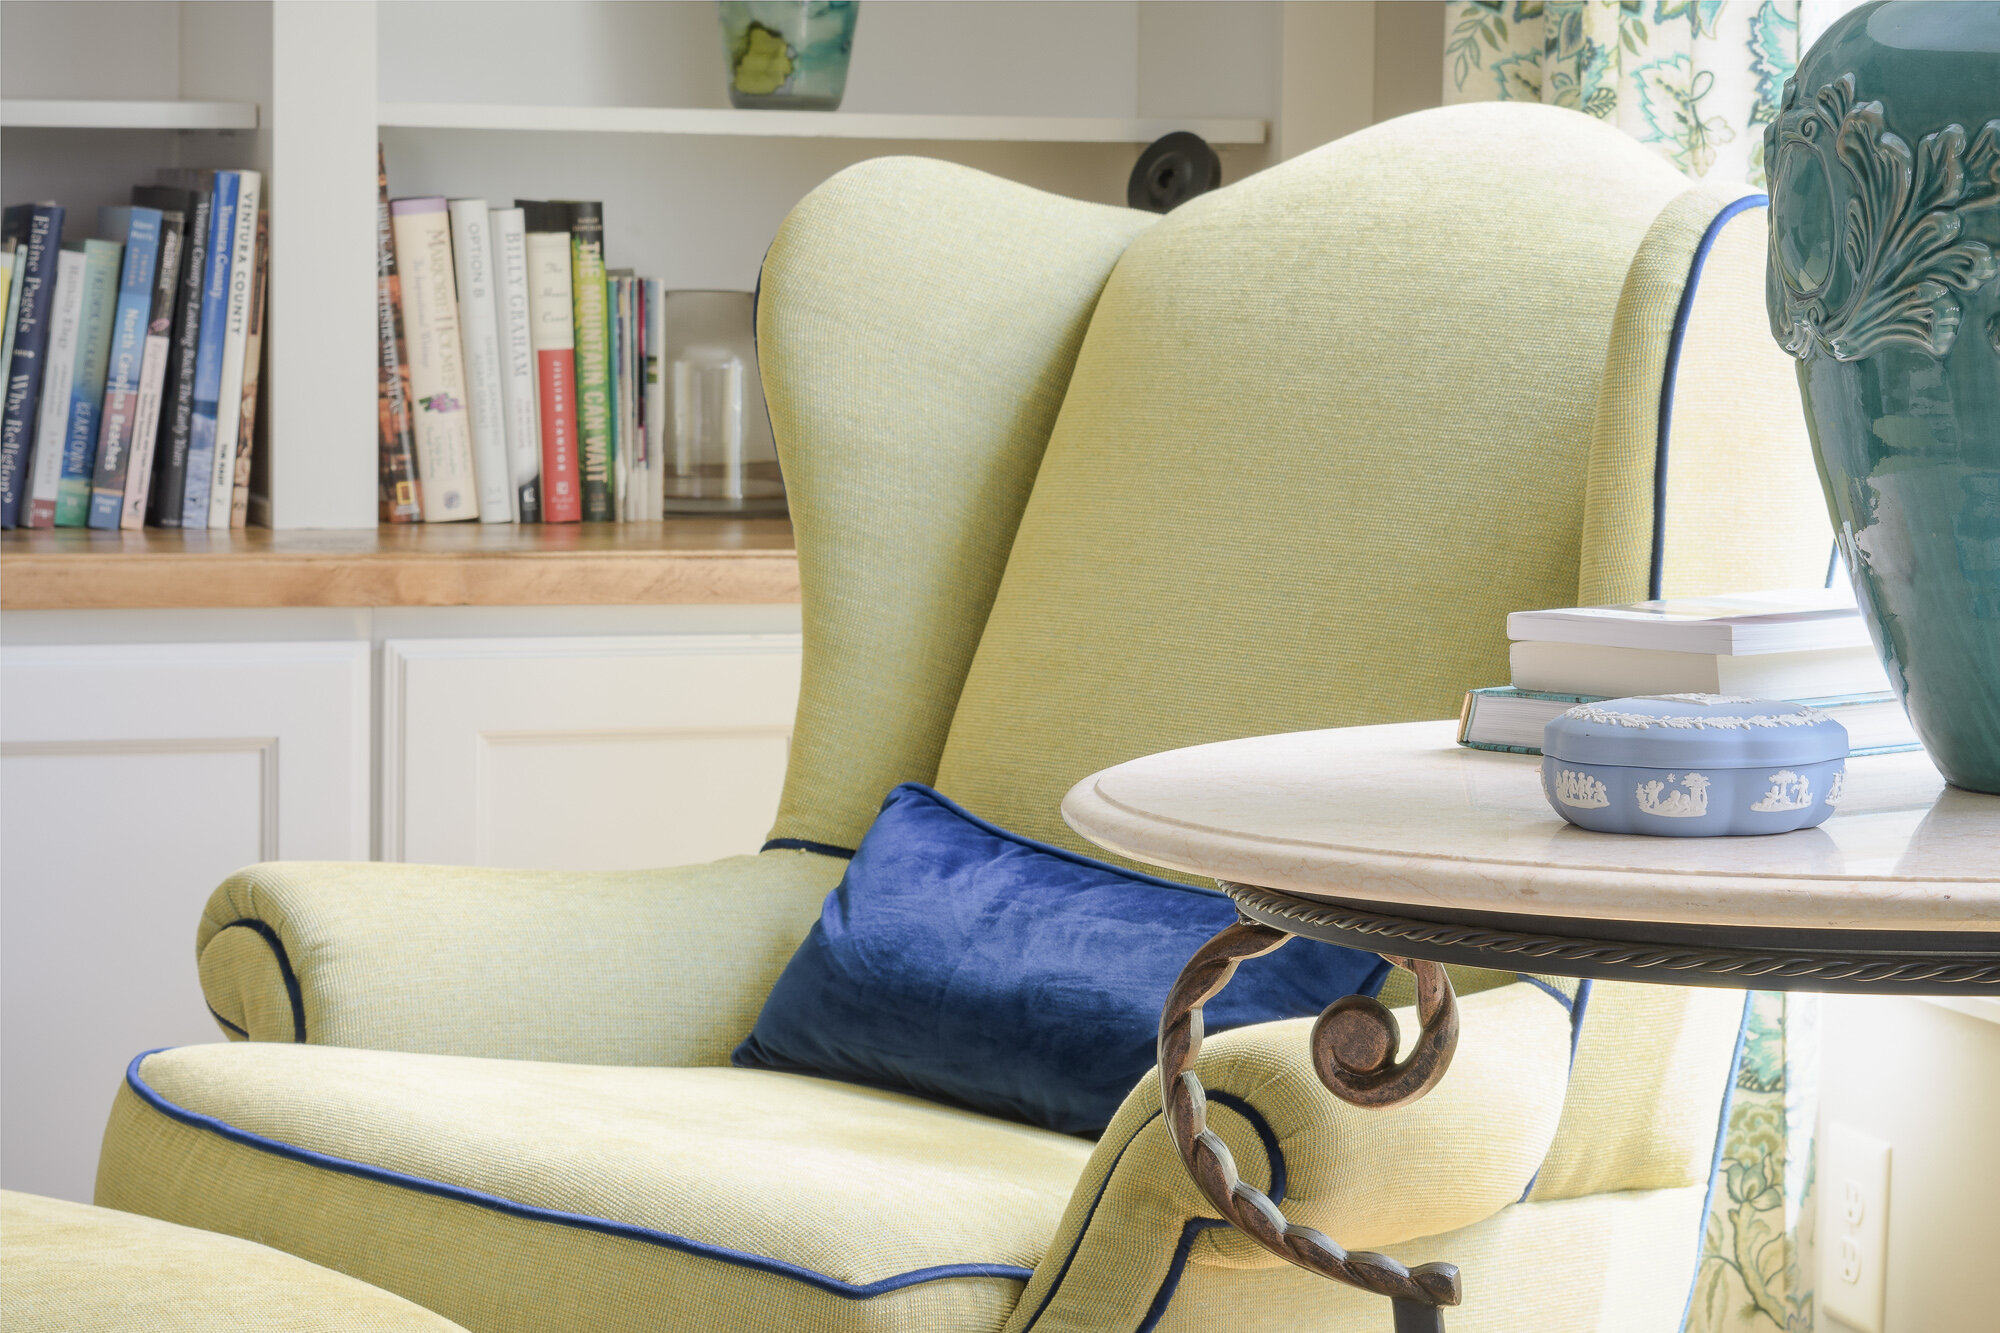 Quality chair reupholstered in green fabric with custom blue accents.